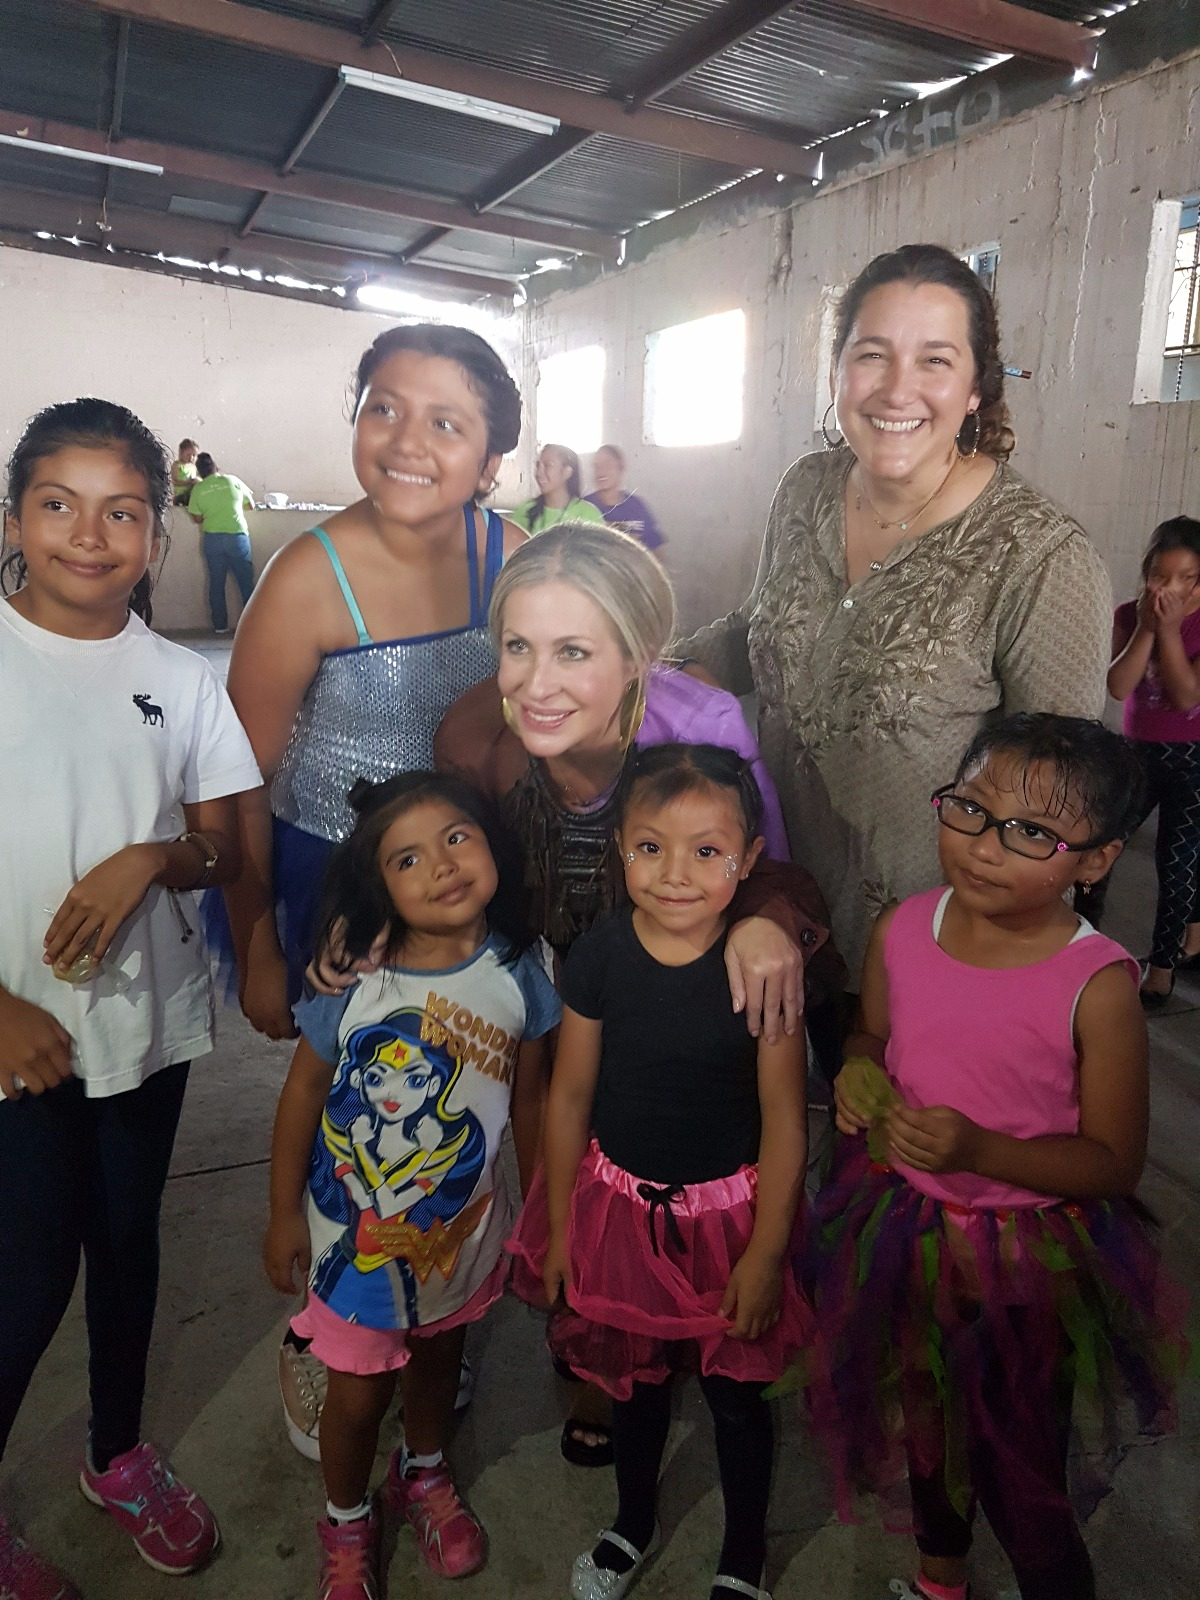 Carmen and Celina de Sola, co-founder and vice president of Glasswing International, with local schoolchildren in Guatemala.